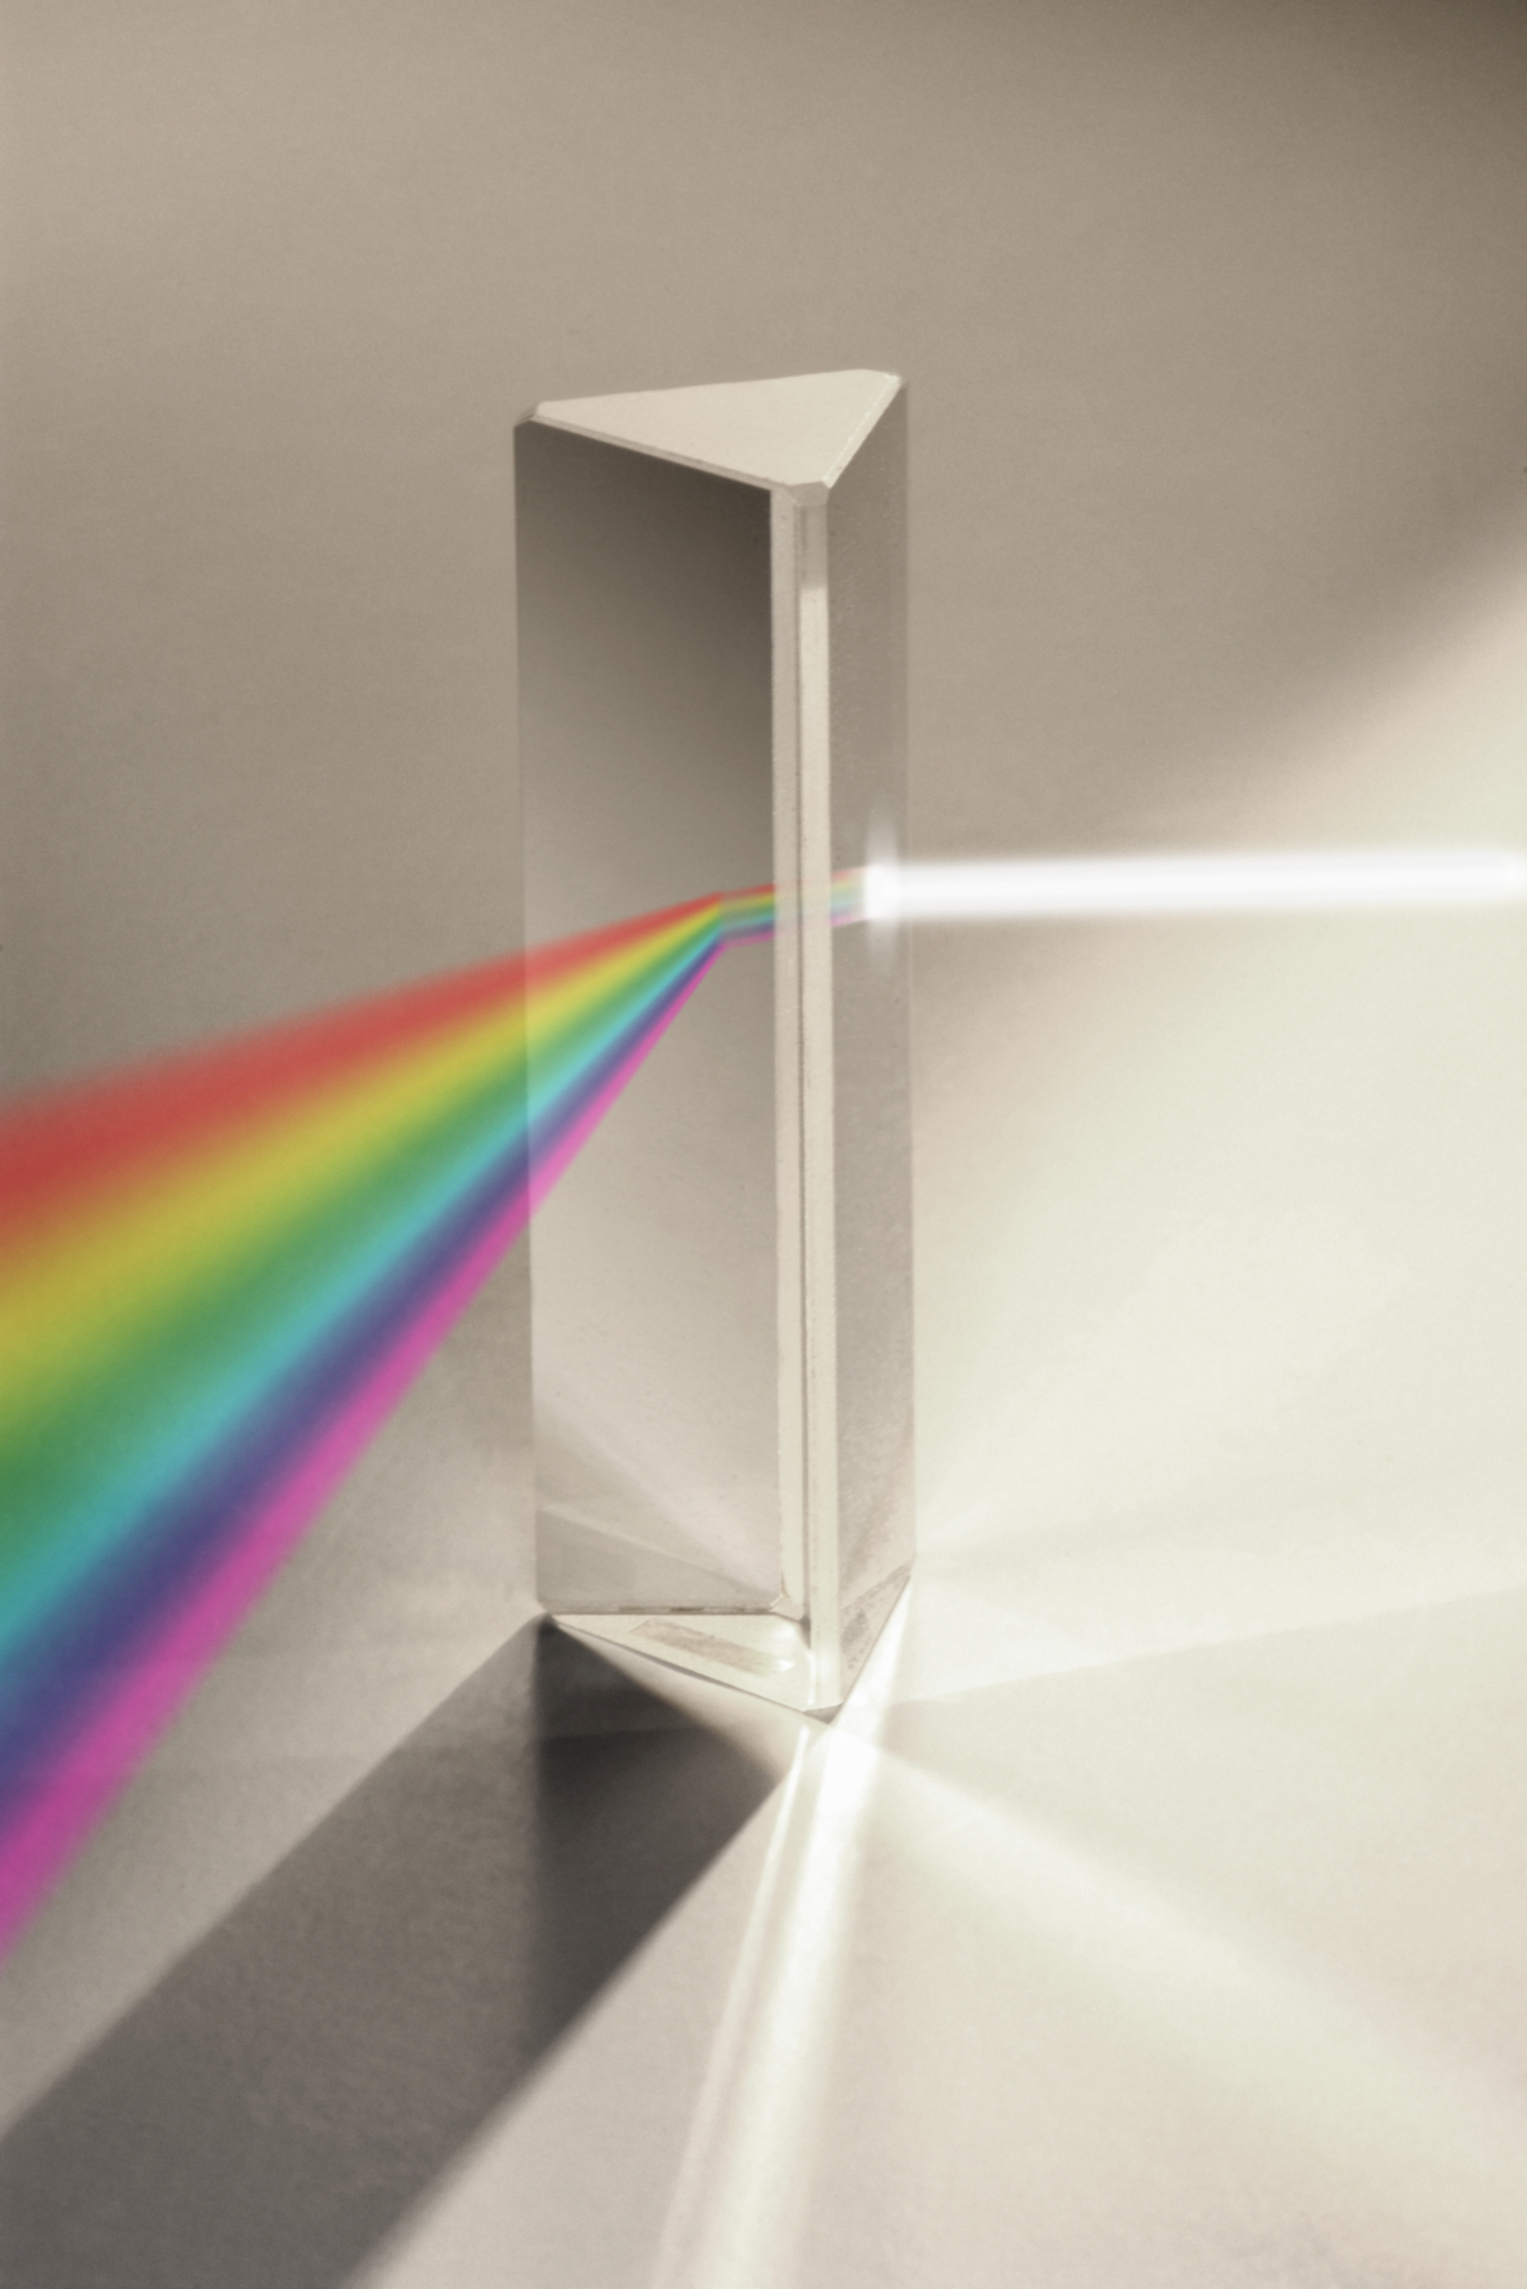 Light Dispersion Experiments For Kids